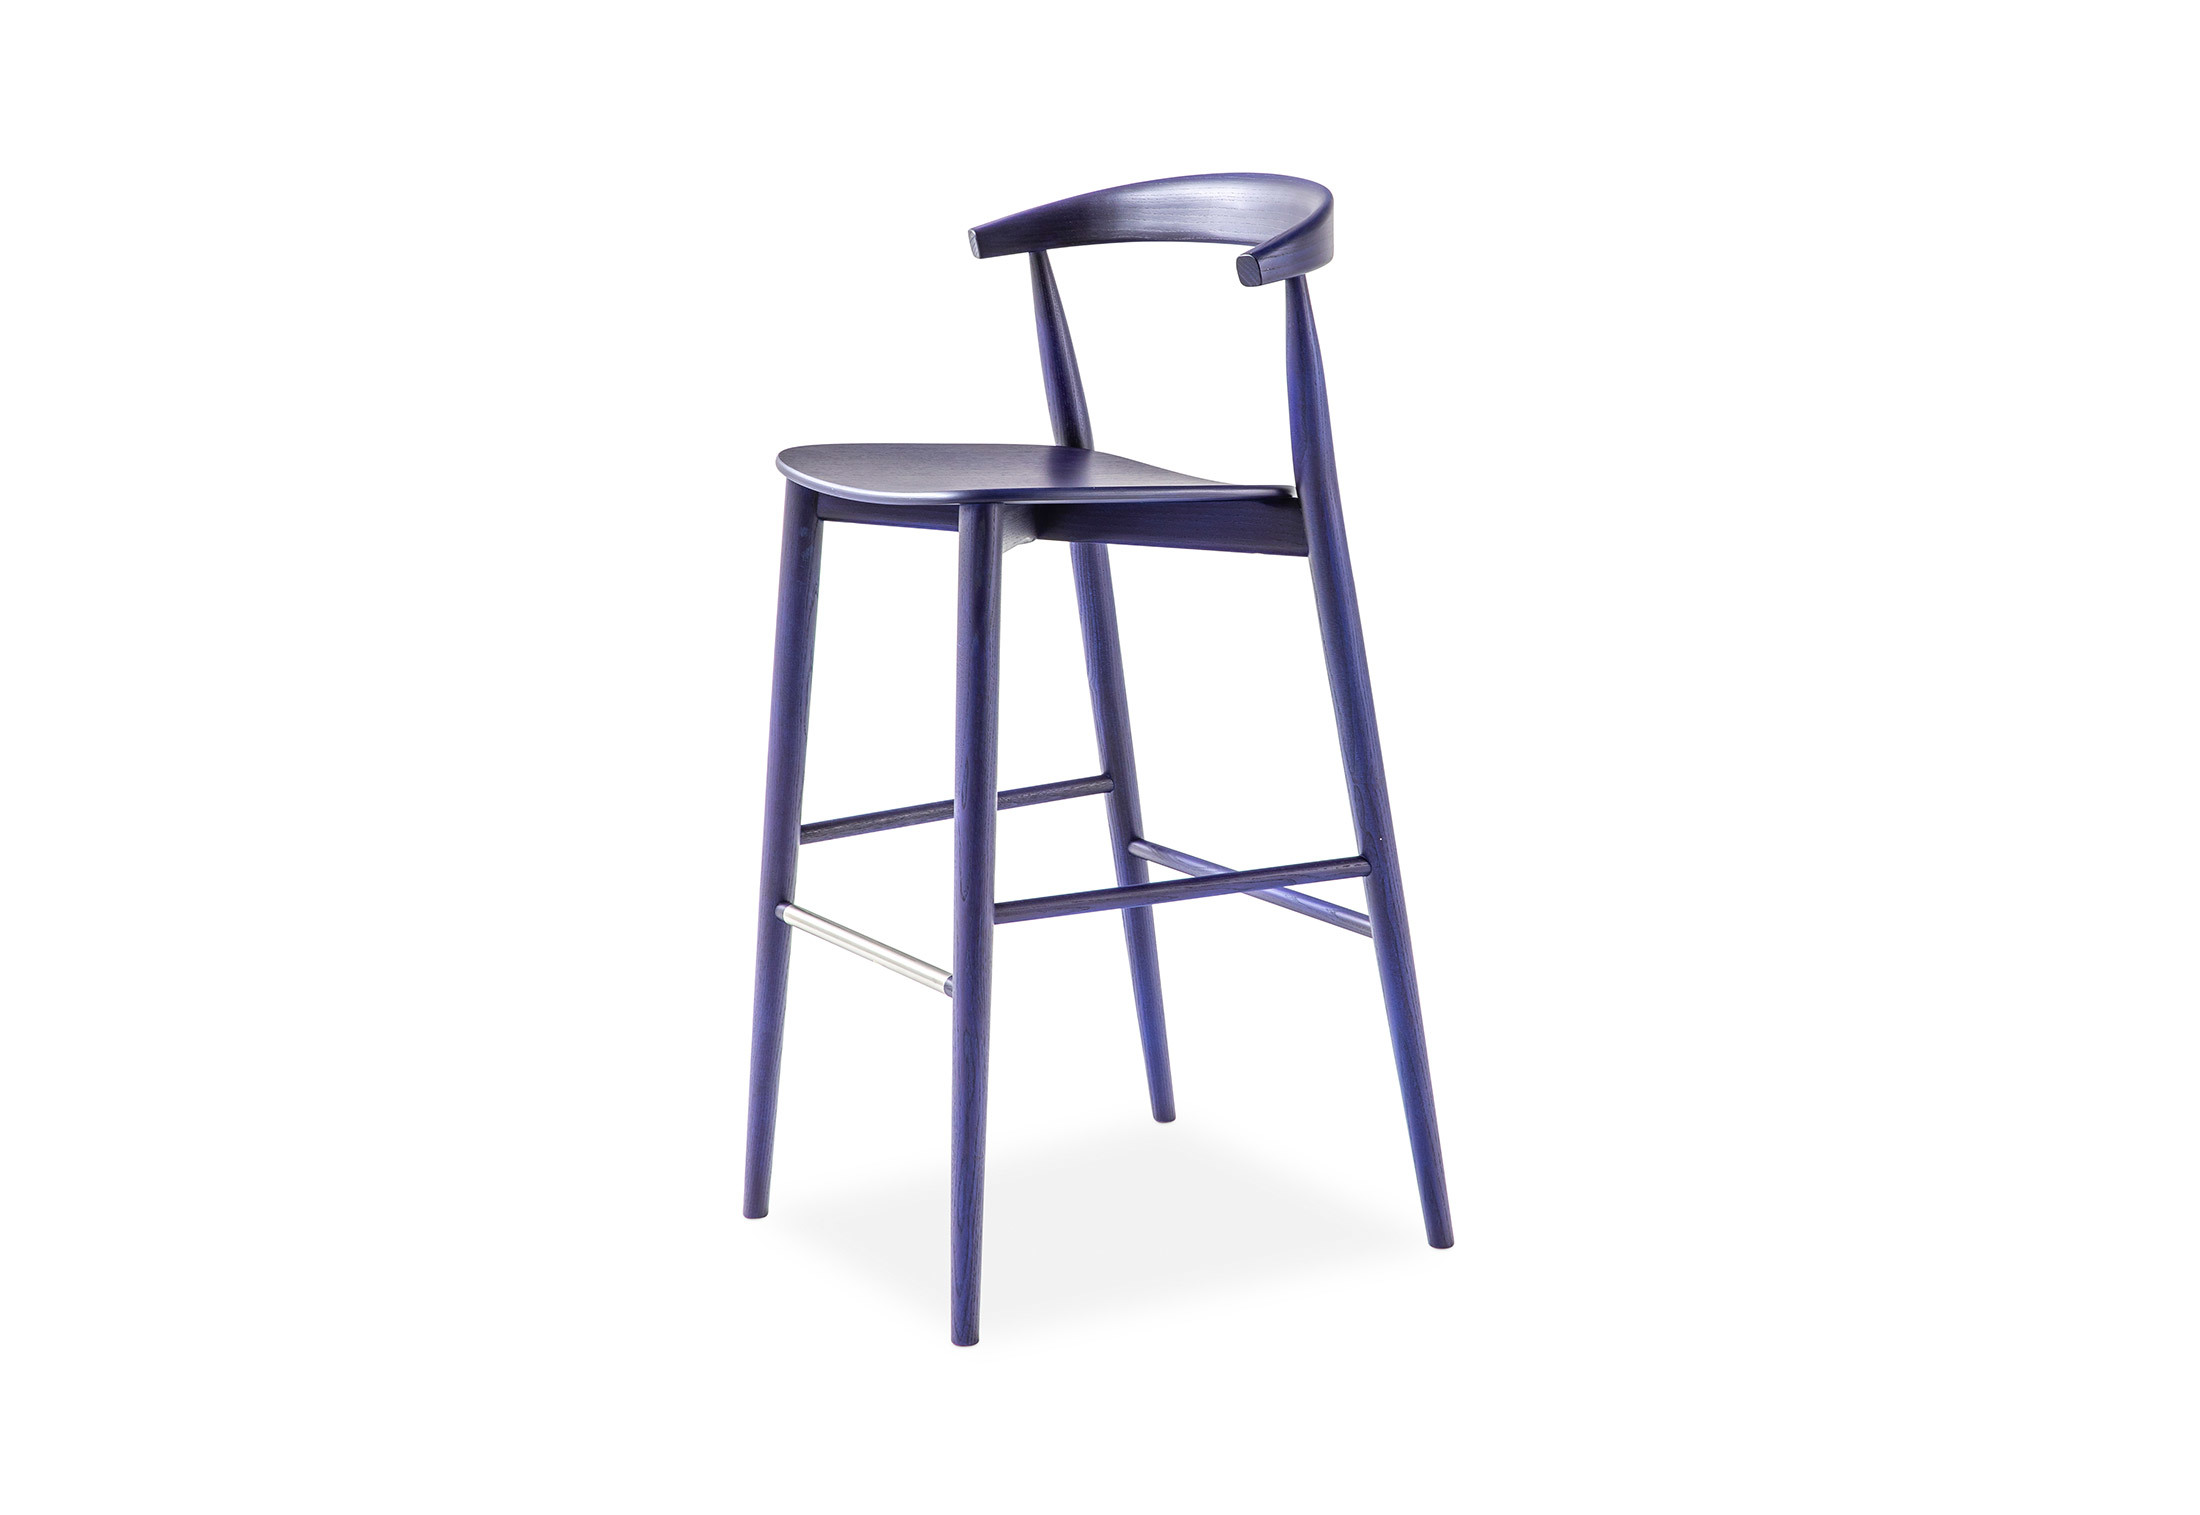 Cool Newood Light Stool By Cappellini Stylepark Squirreltailoven Fun Painted Chair Ideas Images Squirreltailovenorg